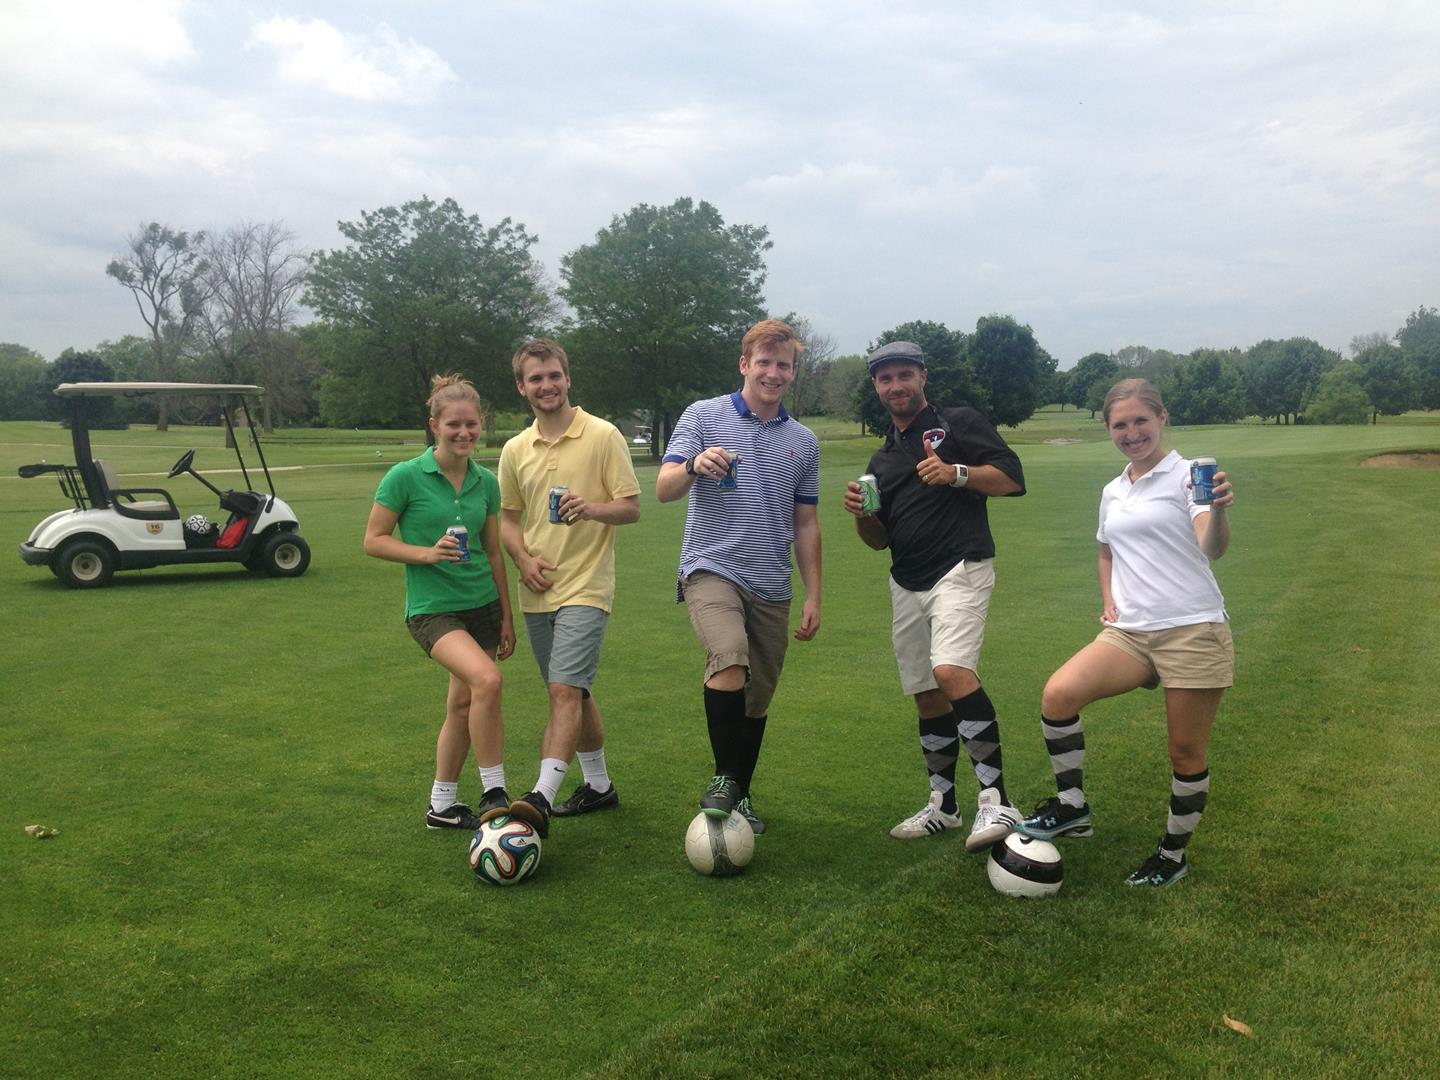 Cheers to Carlos Strem second from right) for a great day of FootGolf.